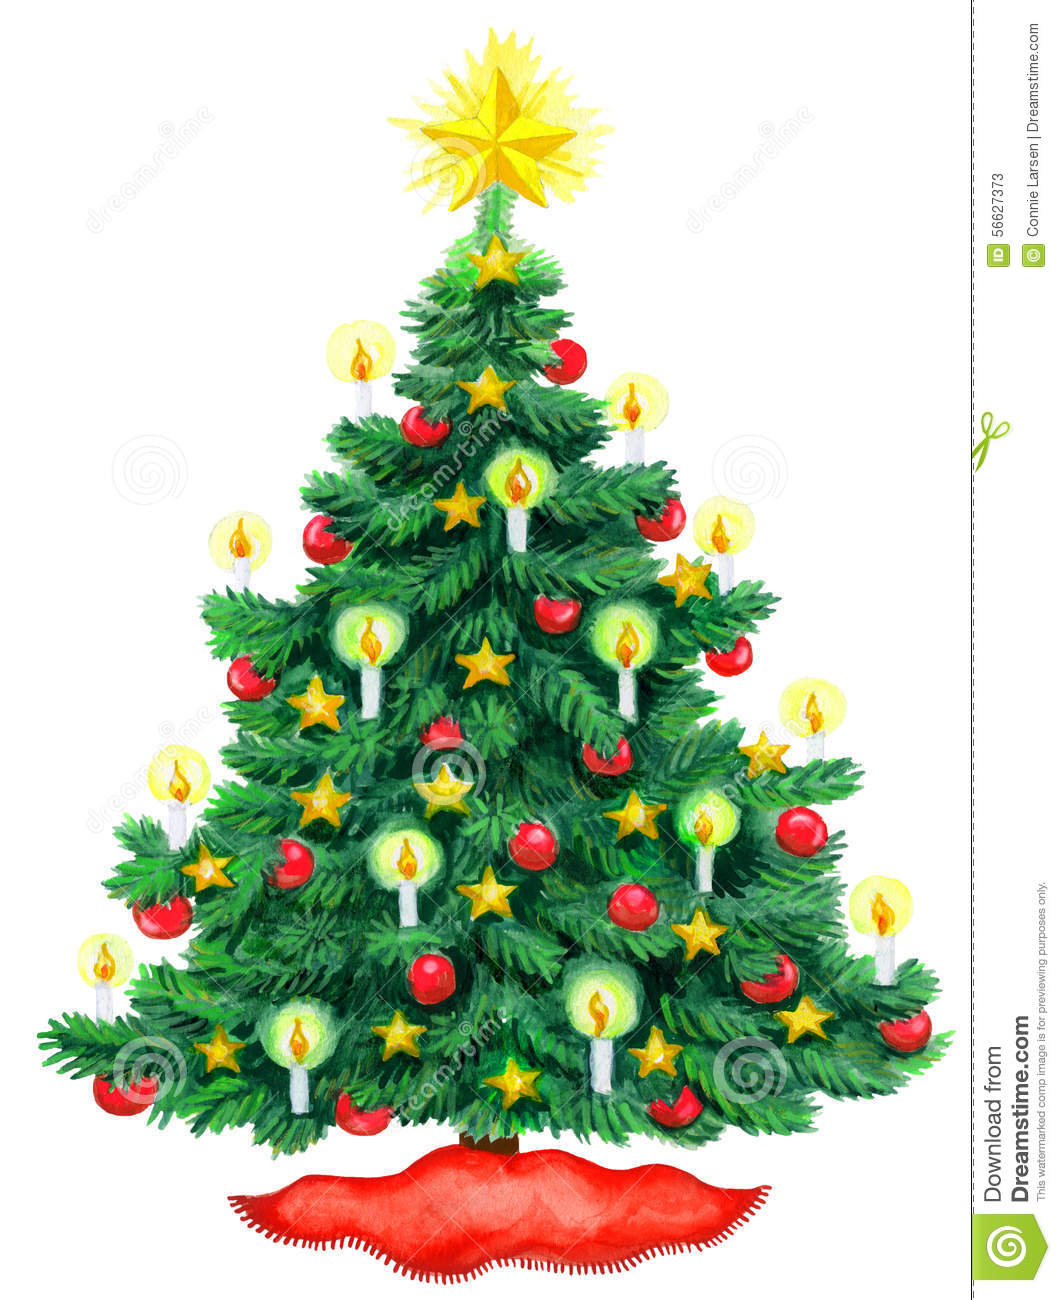 Christmas Tree Watercolor Stock Illustration - Image: 56627373